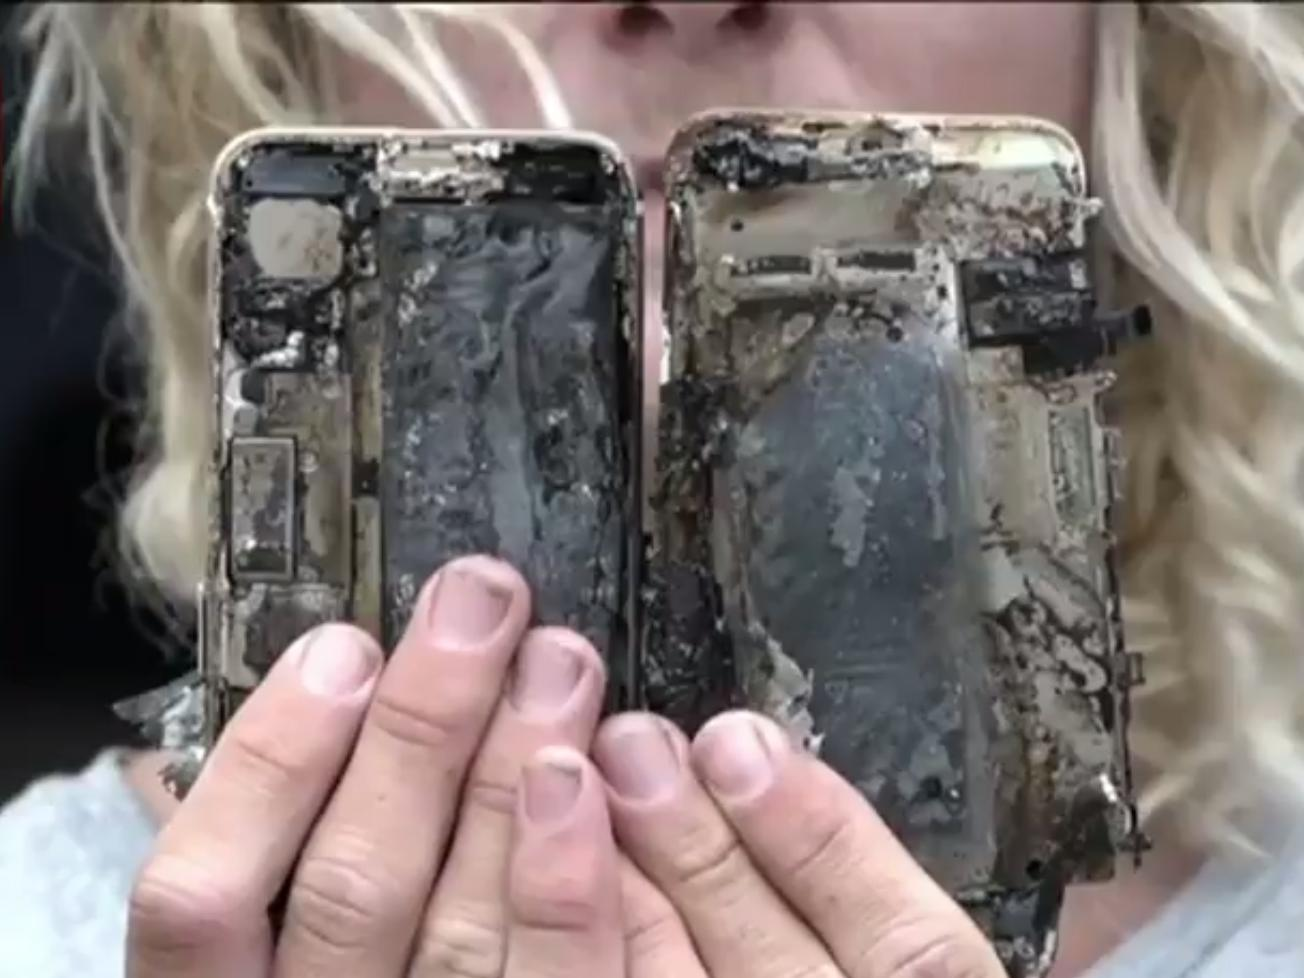 Apple is investigating the iPhone 7 that reportedly caught on fire